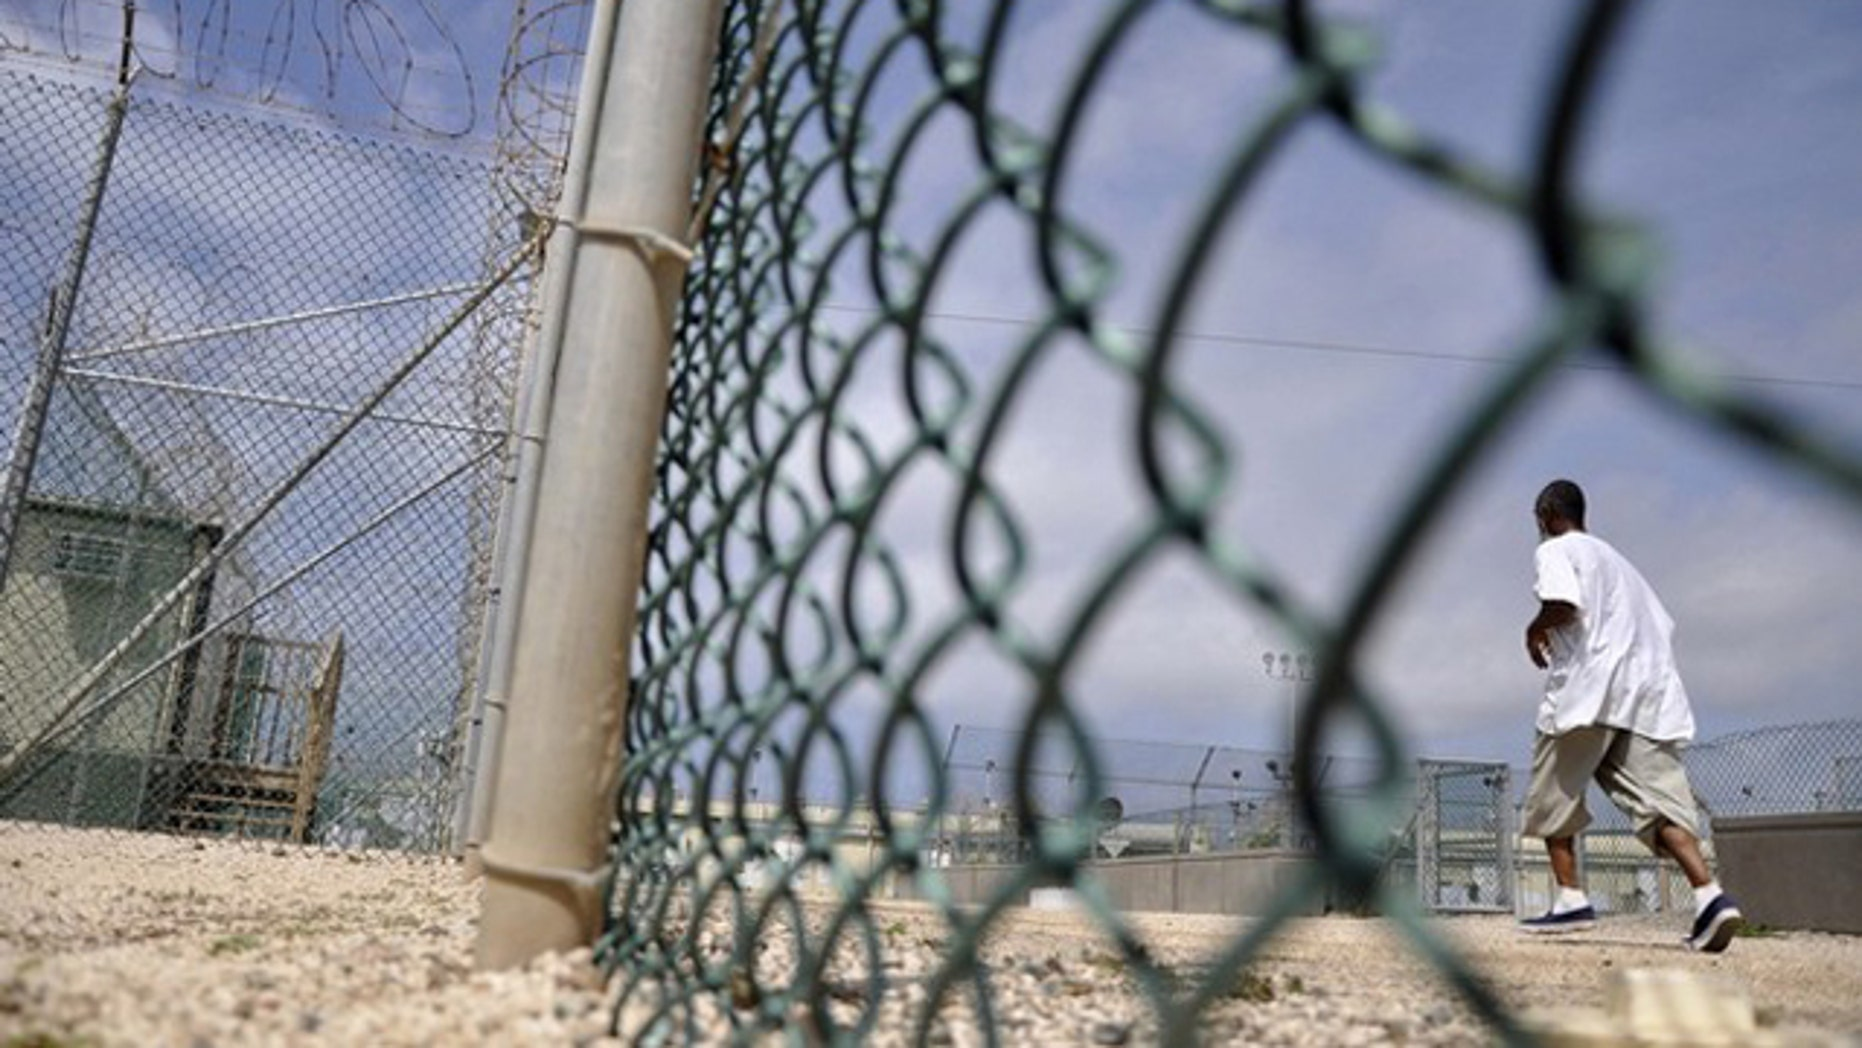 In this April 27, 2010 photo, a detainee runs inside an exercise area at the detention facility at Guantanamo Bay.